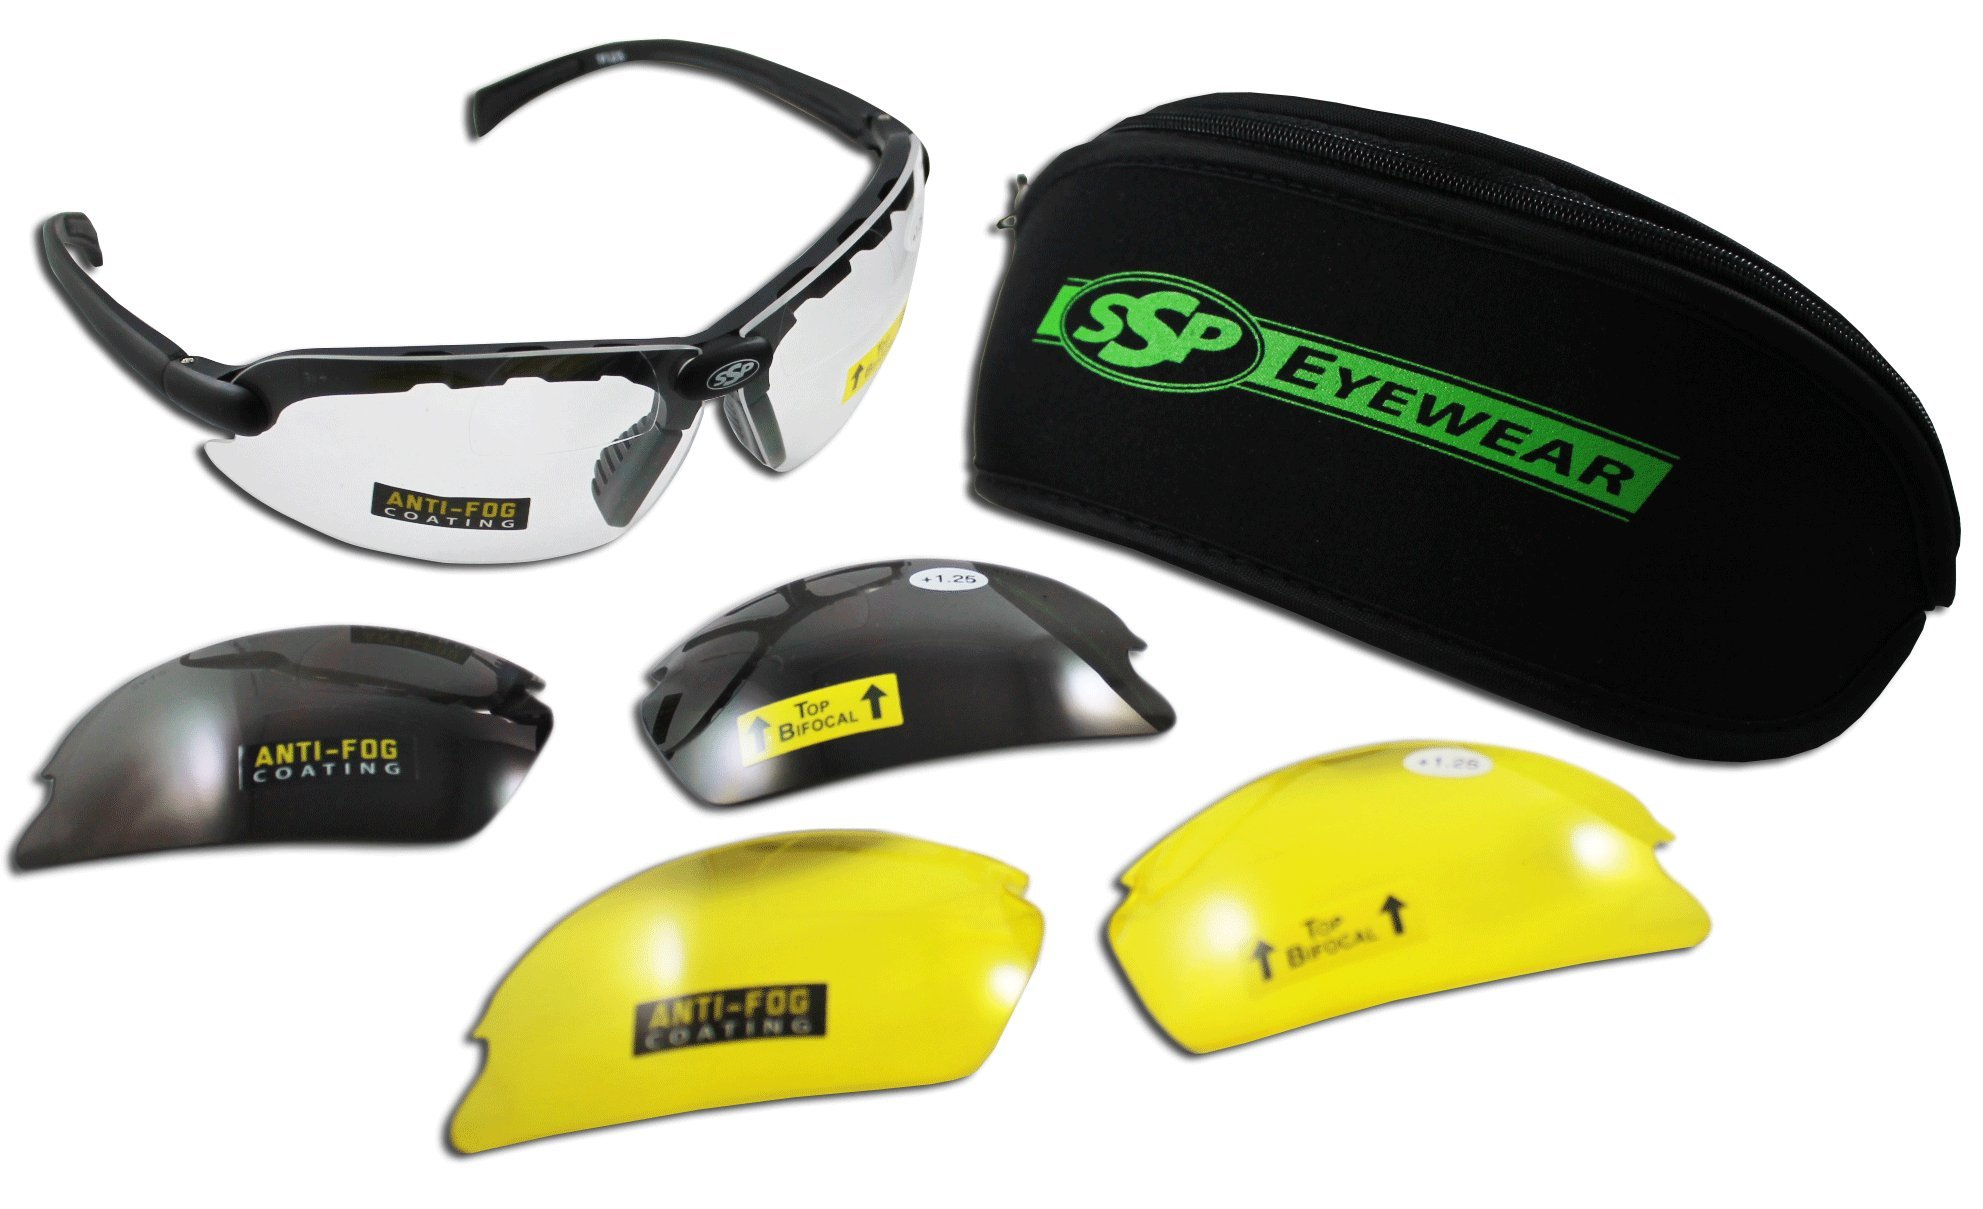 SSP Eyewear Top Focal Tactical Safety Glasses Kit with Assorted Interchangeable 3.00 Bifocal Lenses, TF 3.00 AST KIT